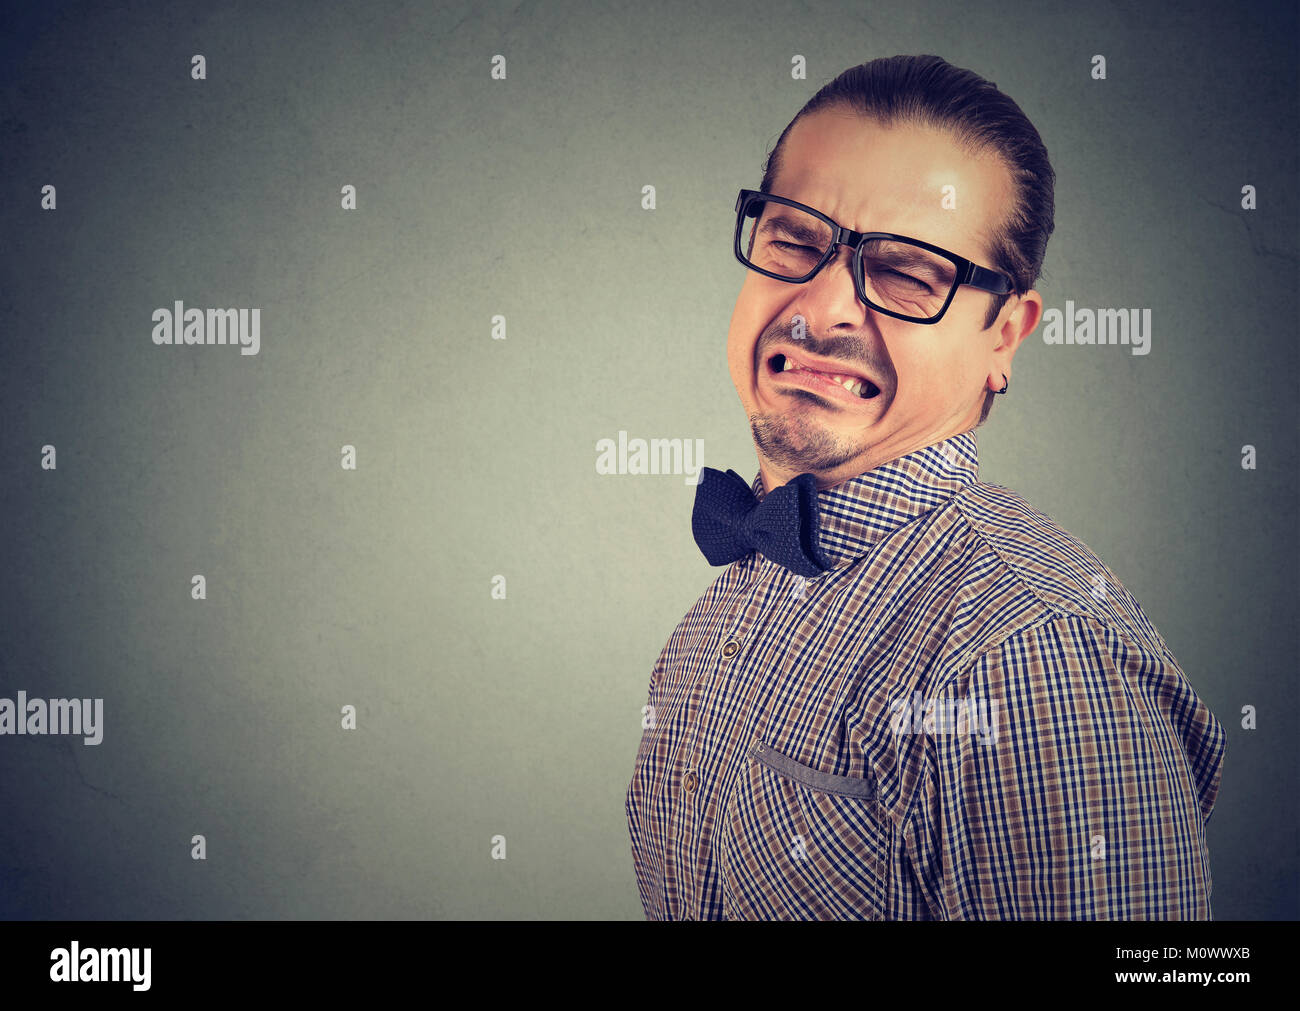 Man in eyeglasses and formal clothing grimacing with disgust on gray background. Stock Photo